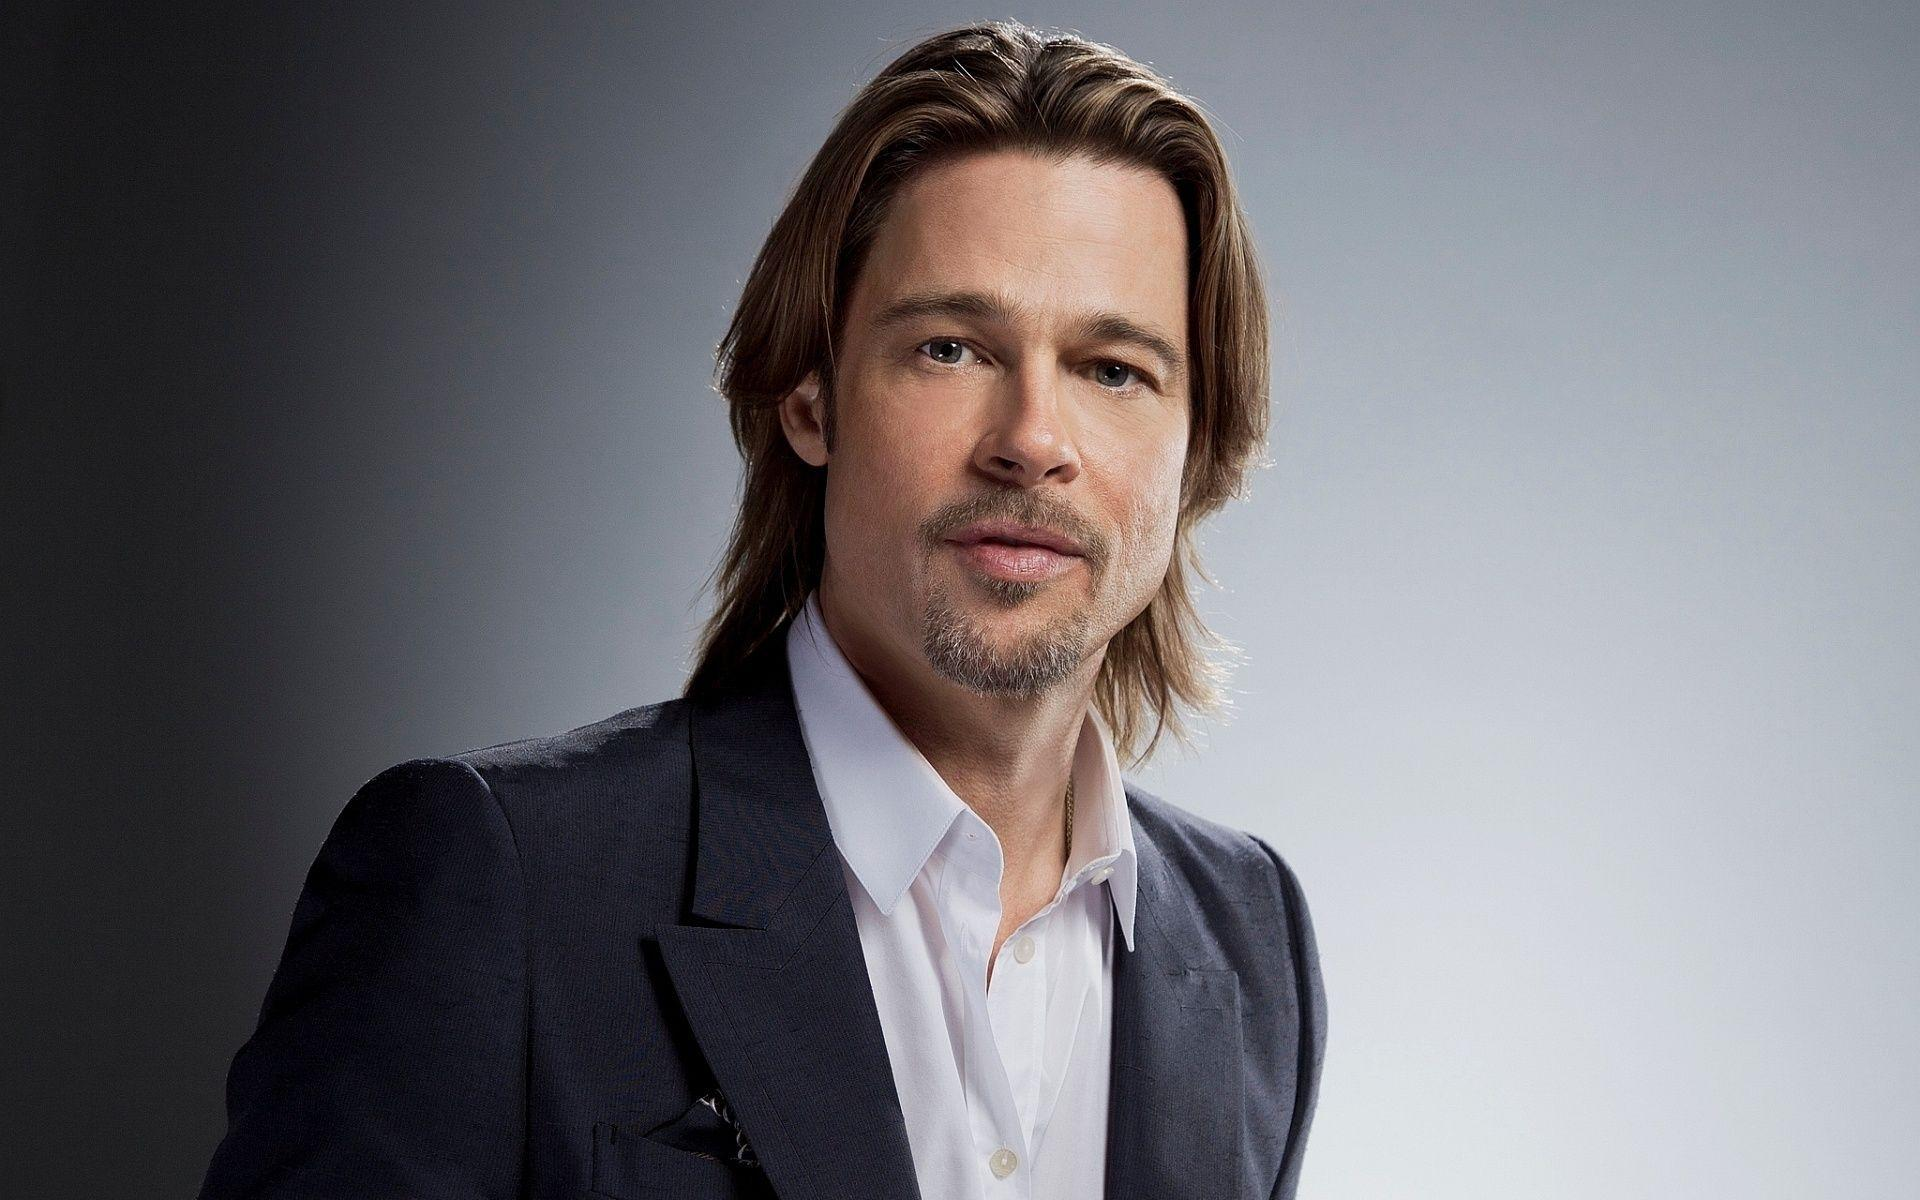 Brad Pitt Hair Style Photos and images